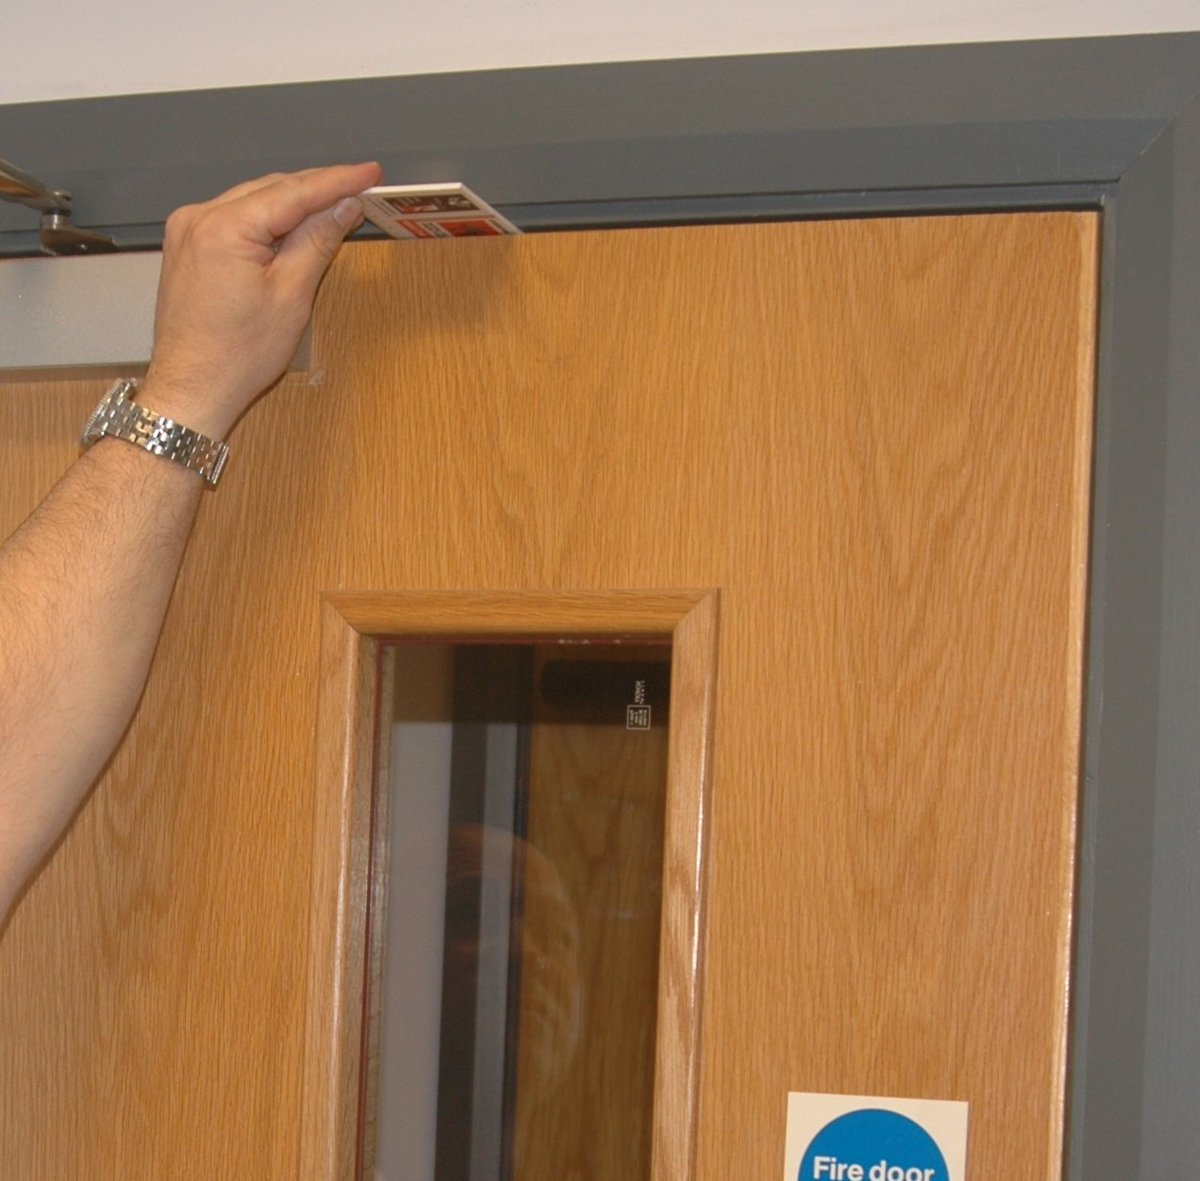 GEZE UK on Twitter  To show our support for #FireDoorSafetyWeek @GEZE_UK are giving out free door gap testers. Email info.uk@geze.com to get yours!u2026 ... & GEZE UK on Twitter: